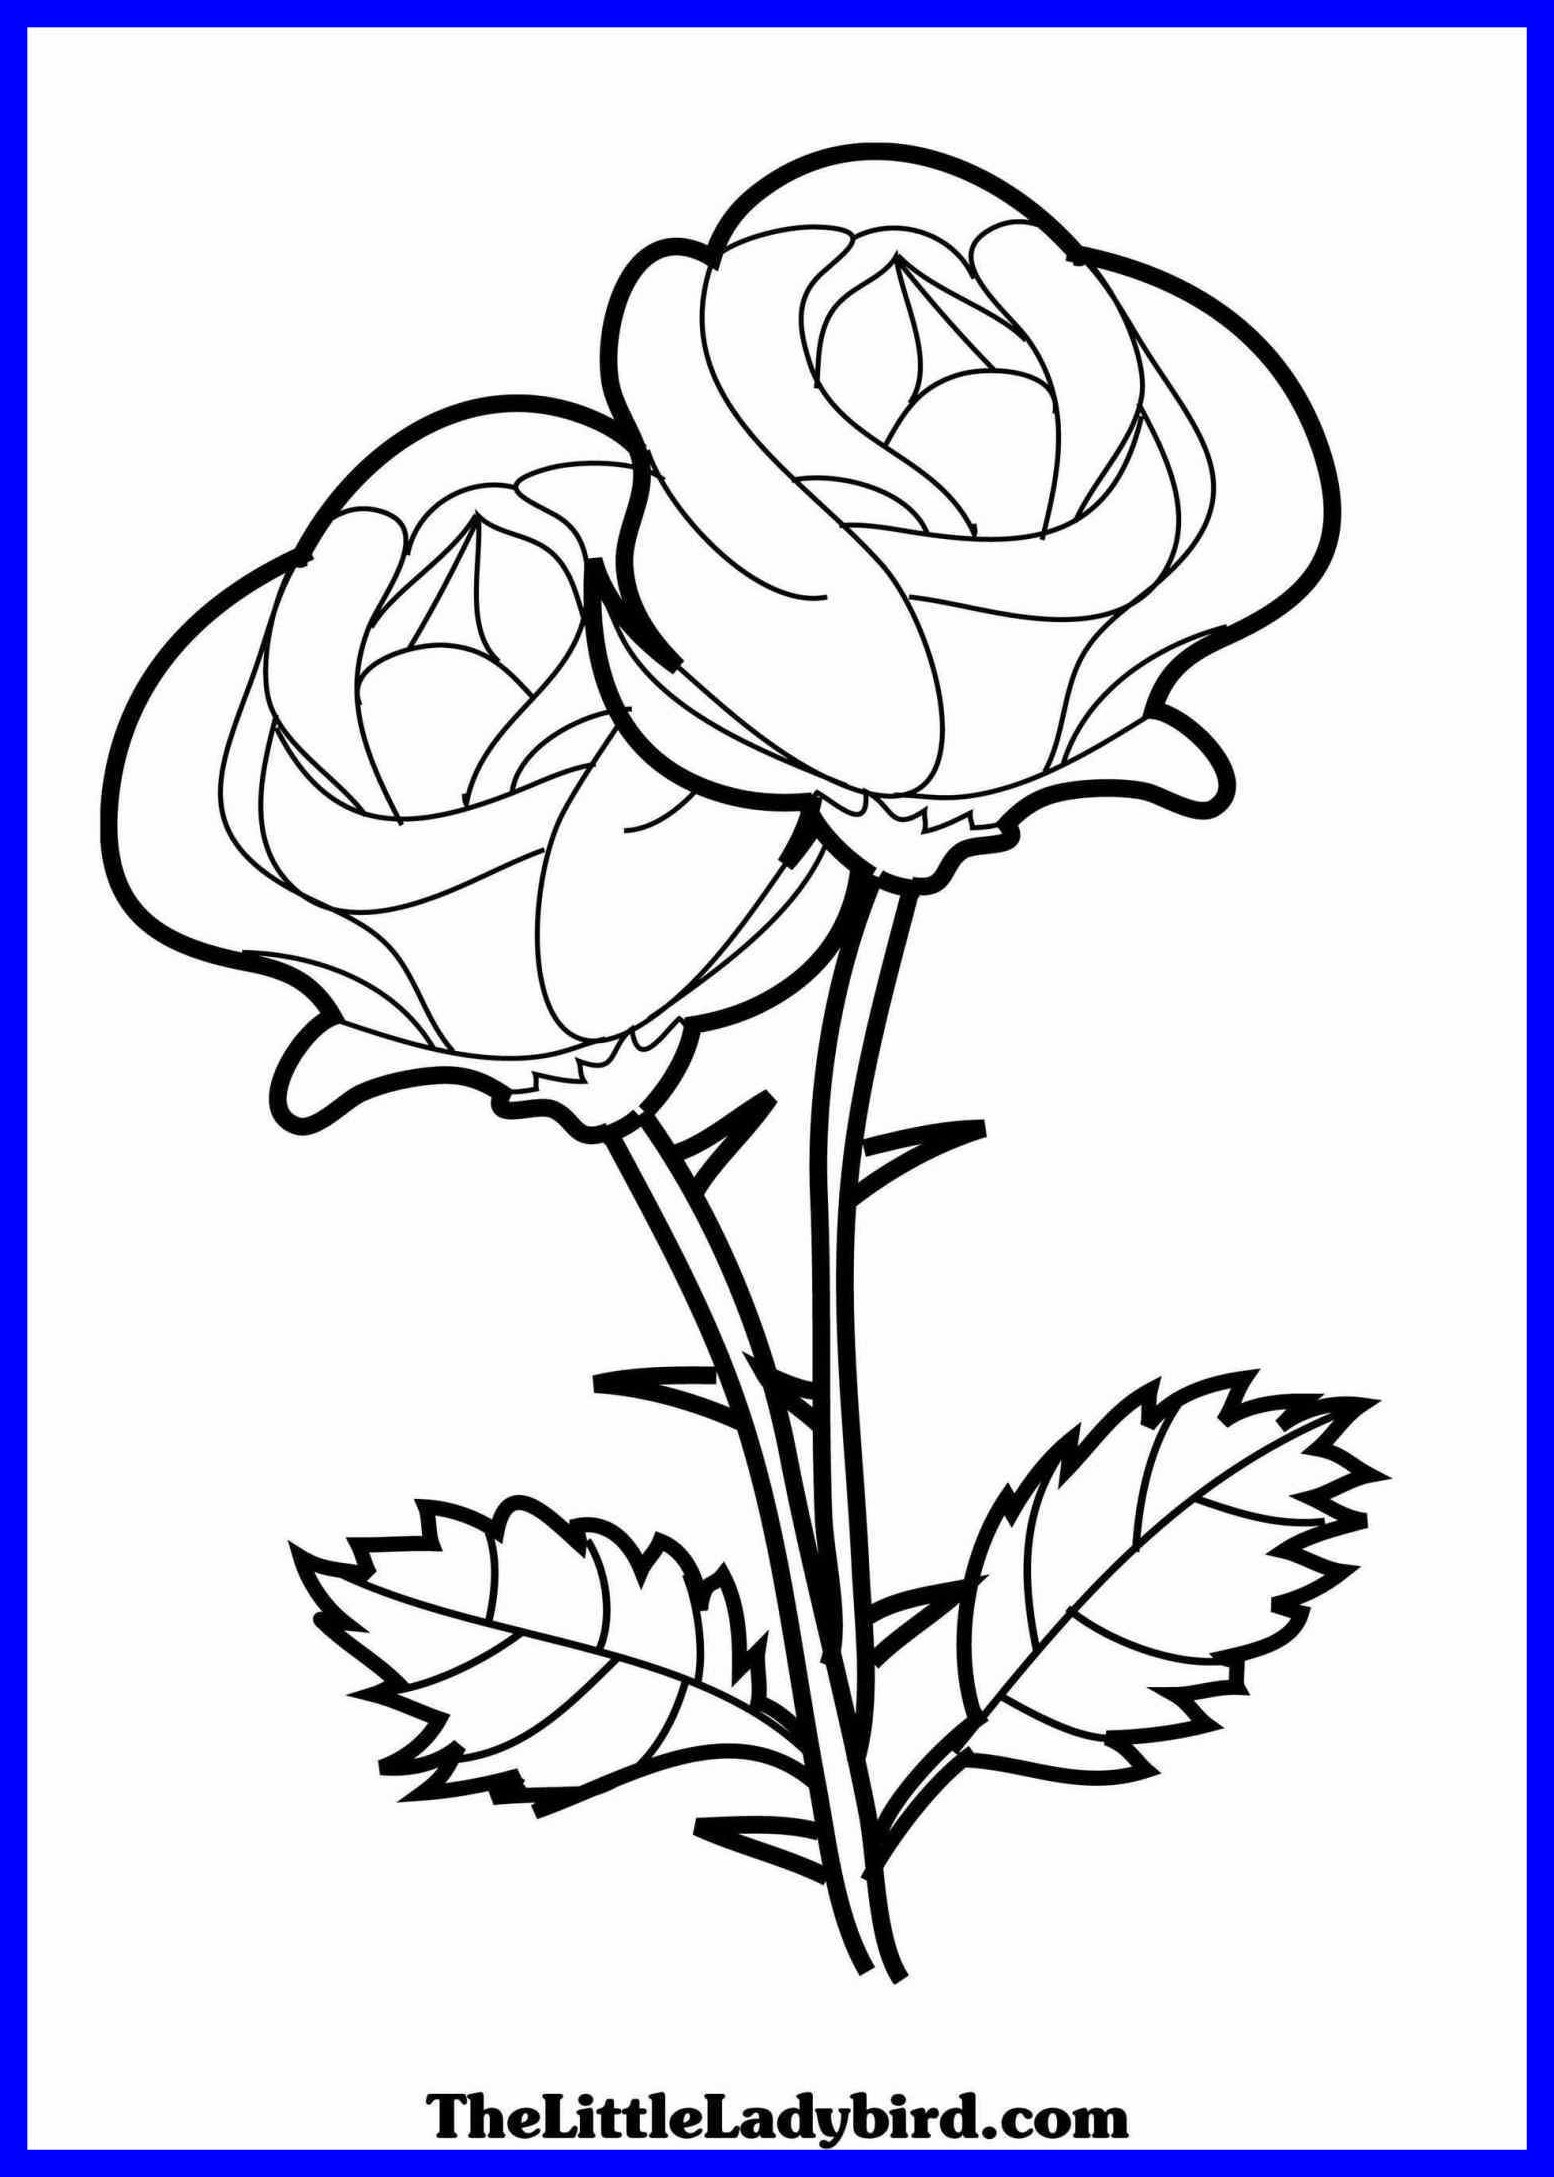 Coloring Pages Of Broken Hearts